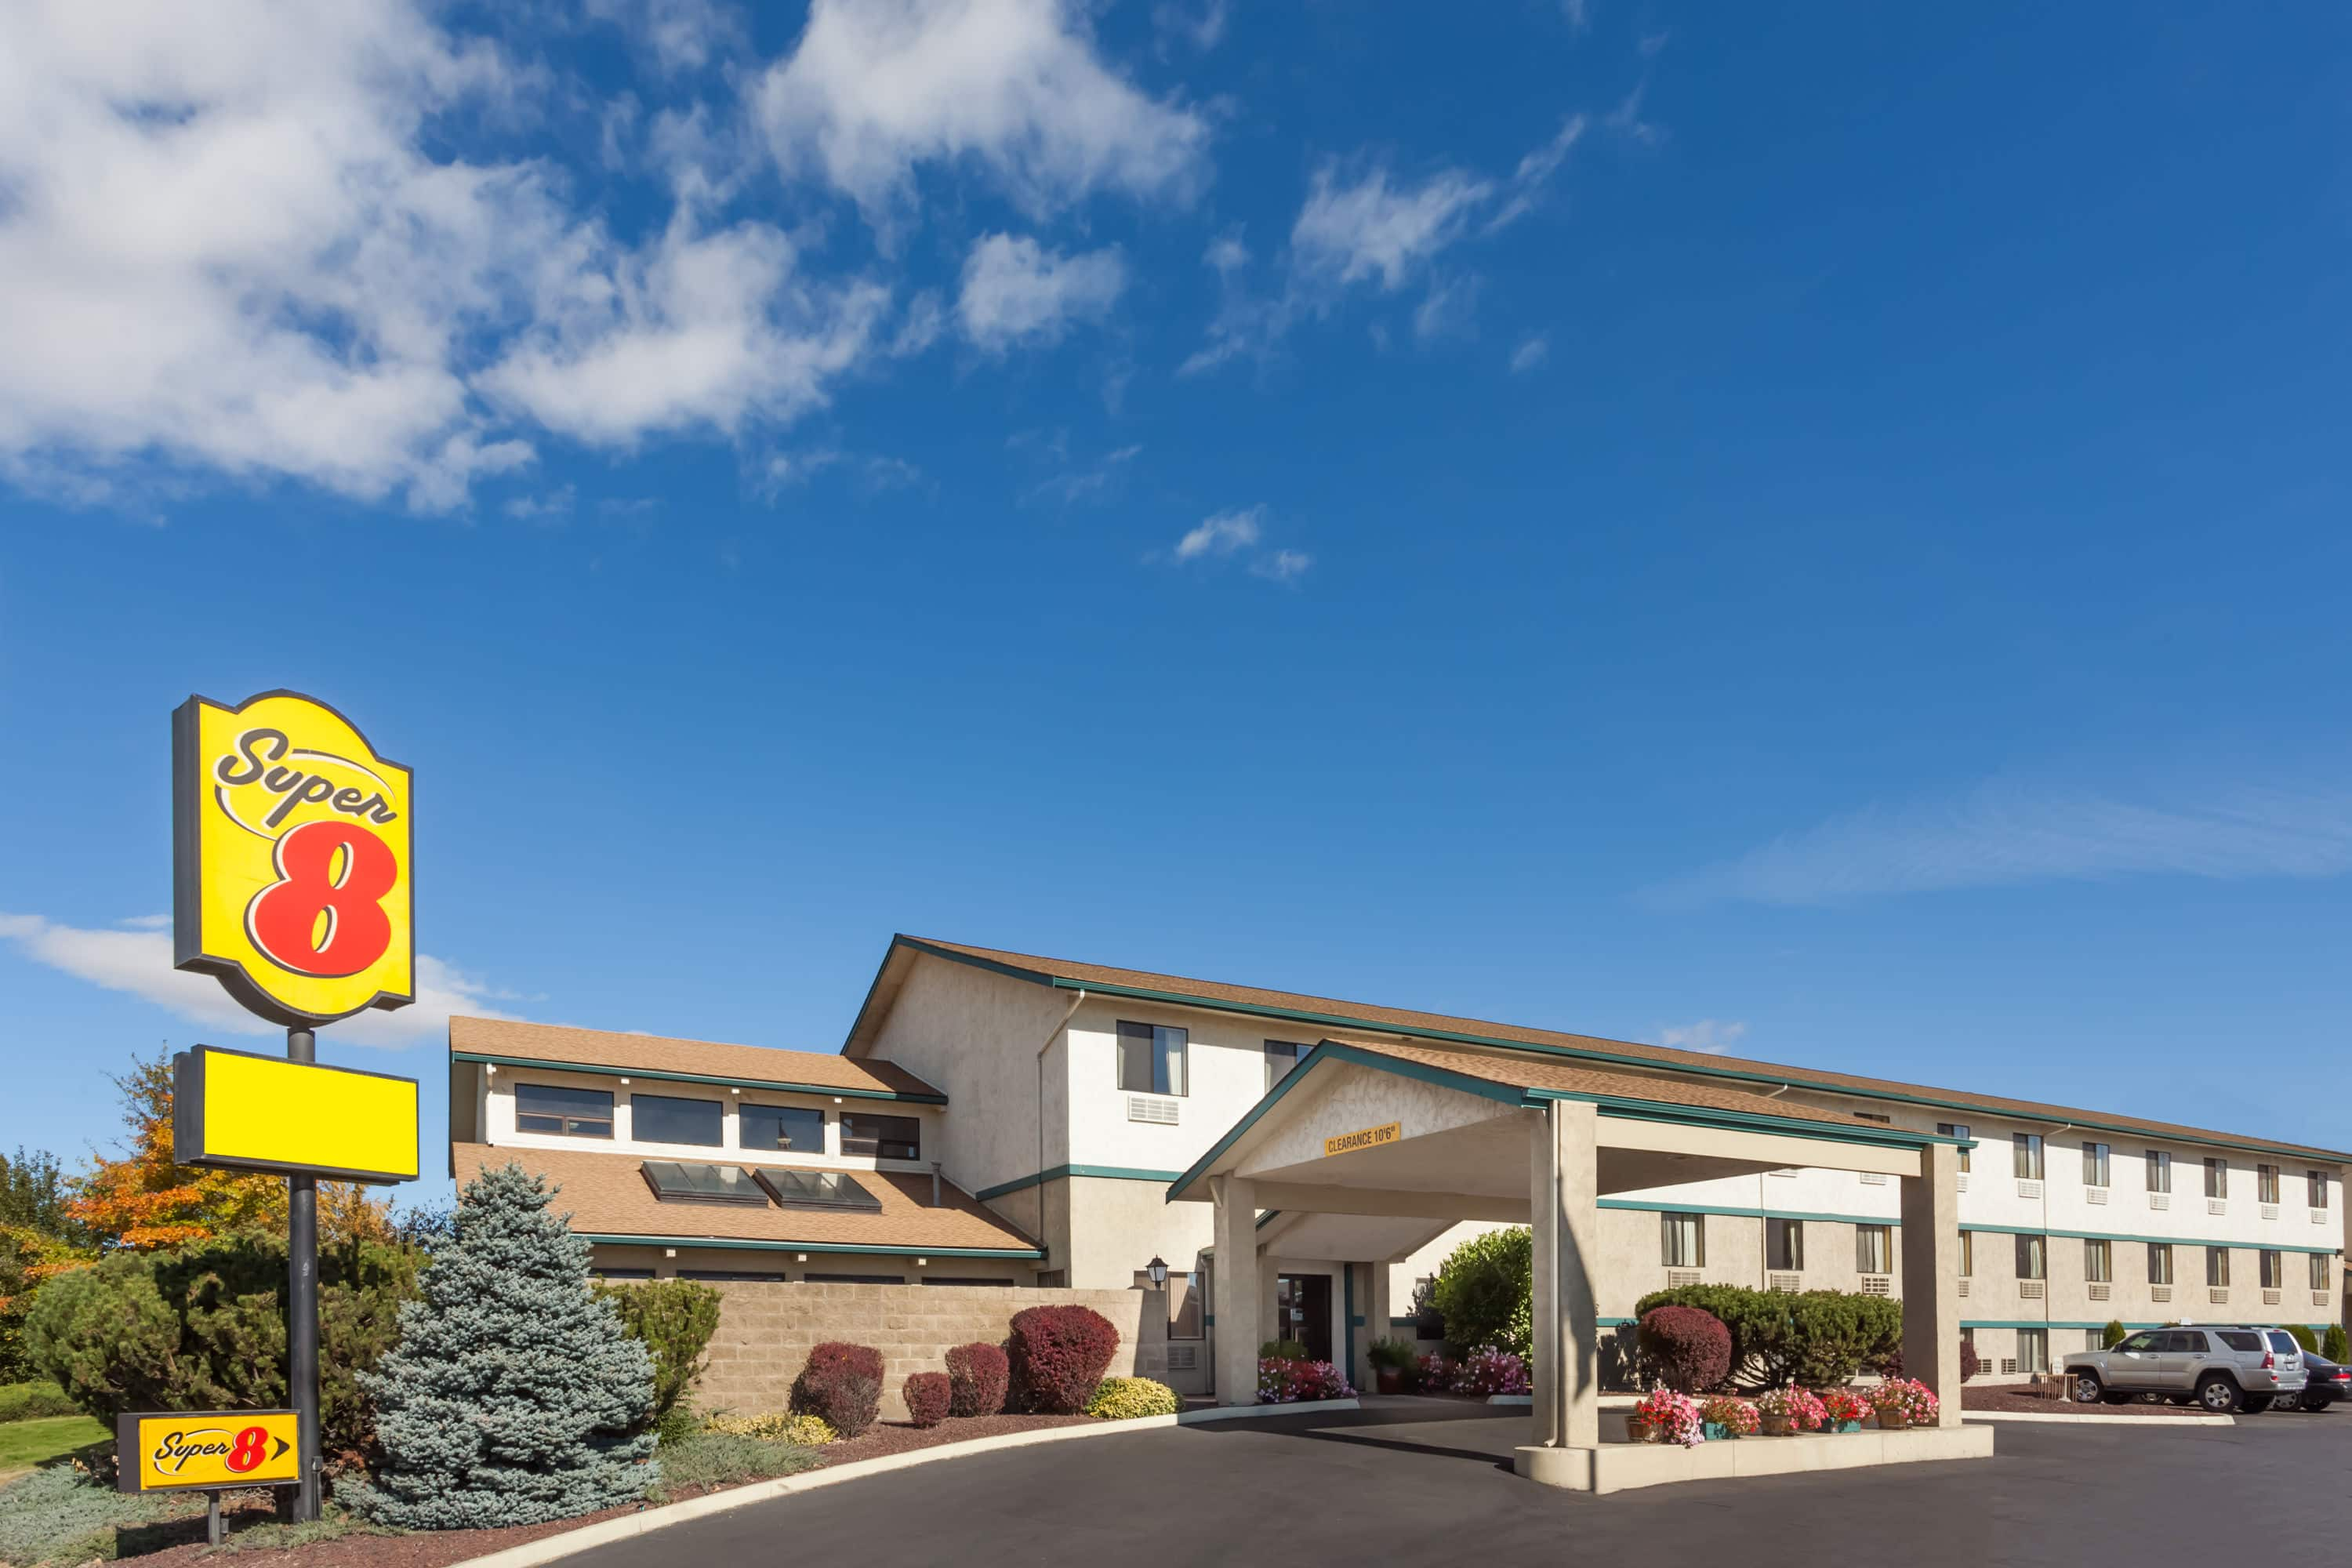 Best Exterior Of Super Ellensburg Hotel In Washington With Hotels Truck Parking